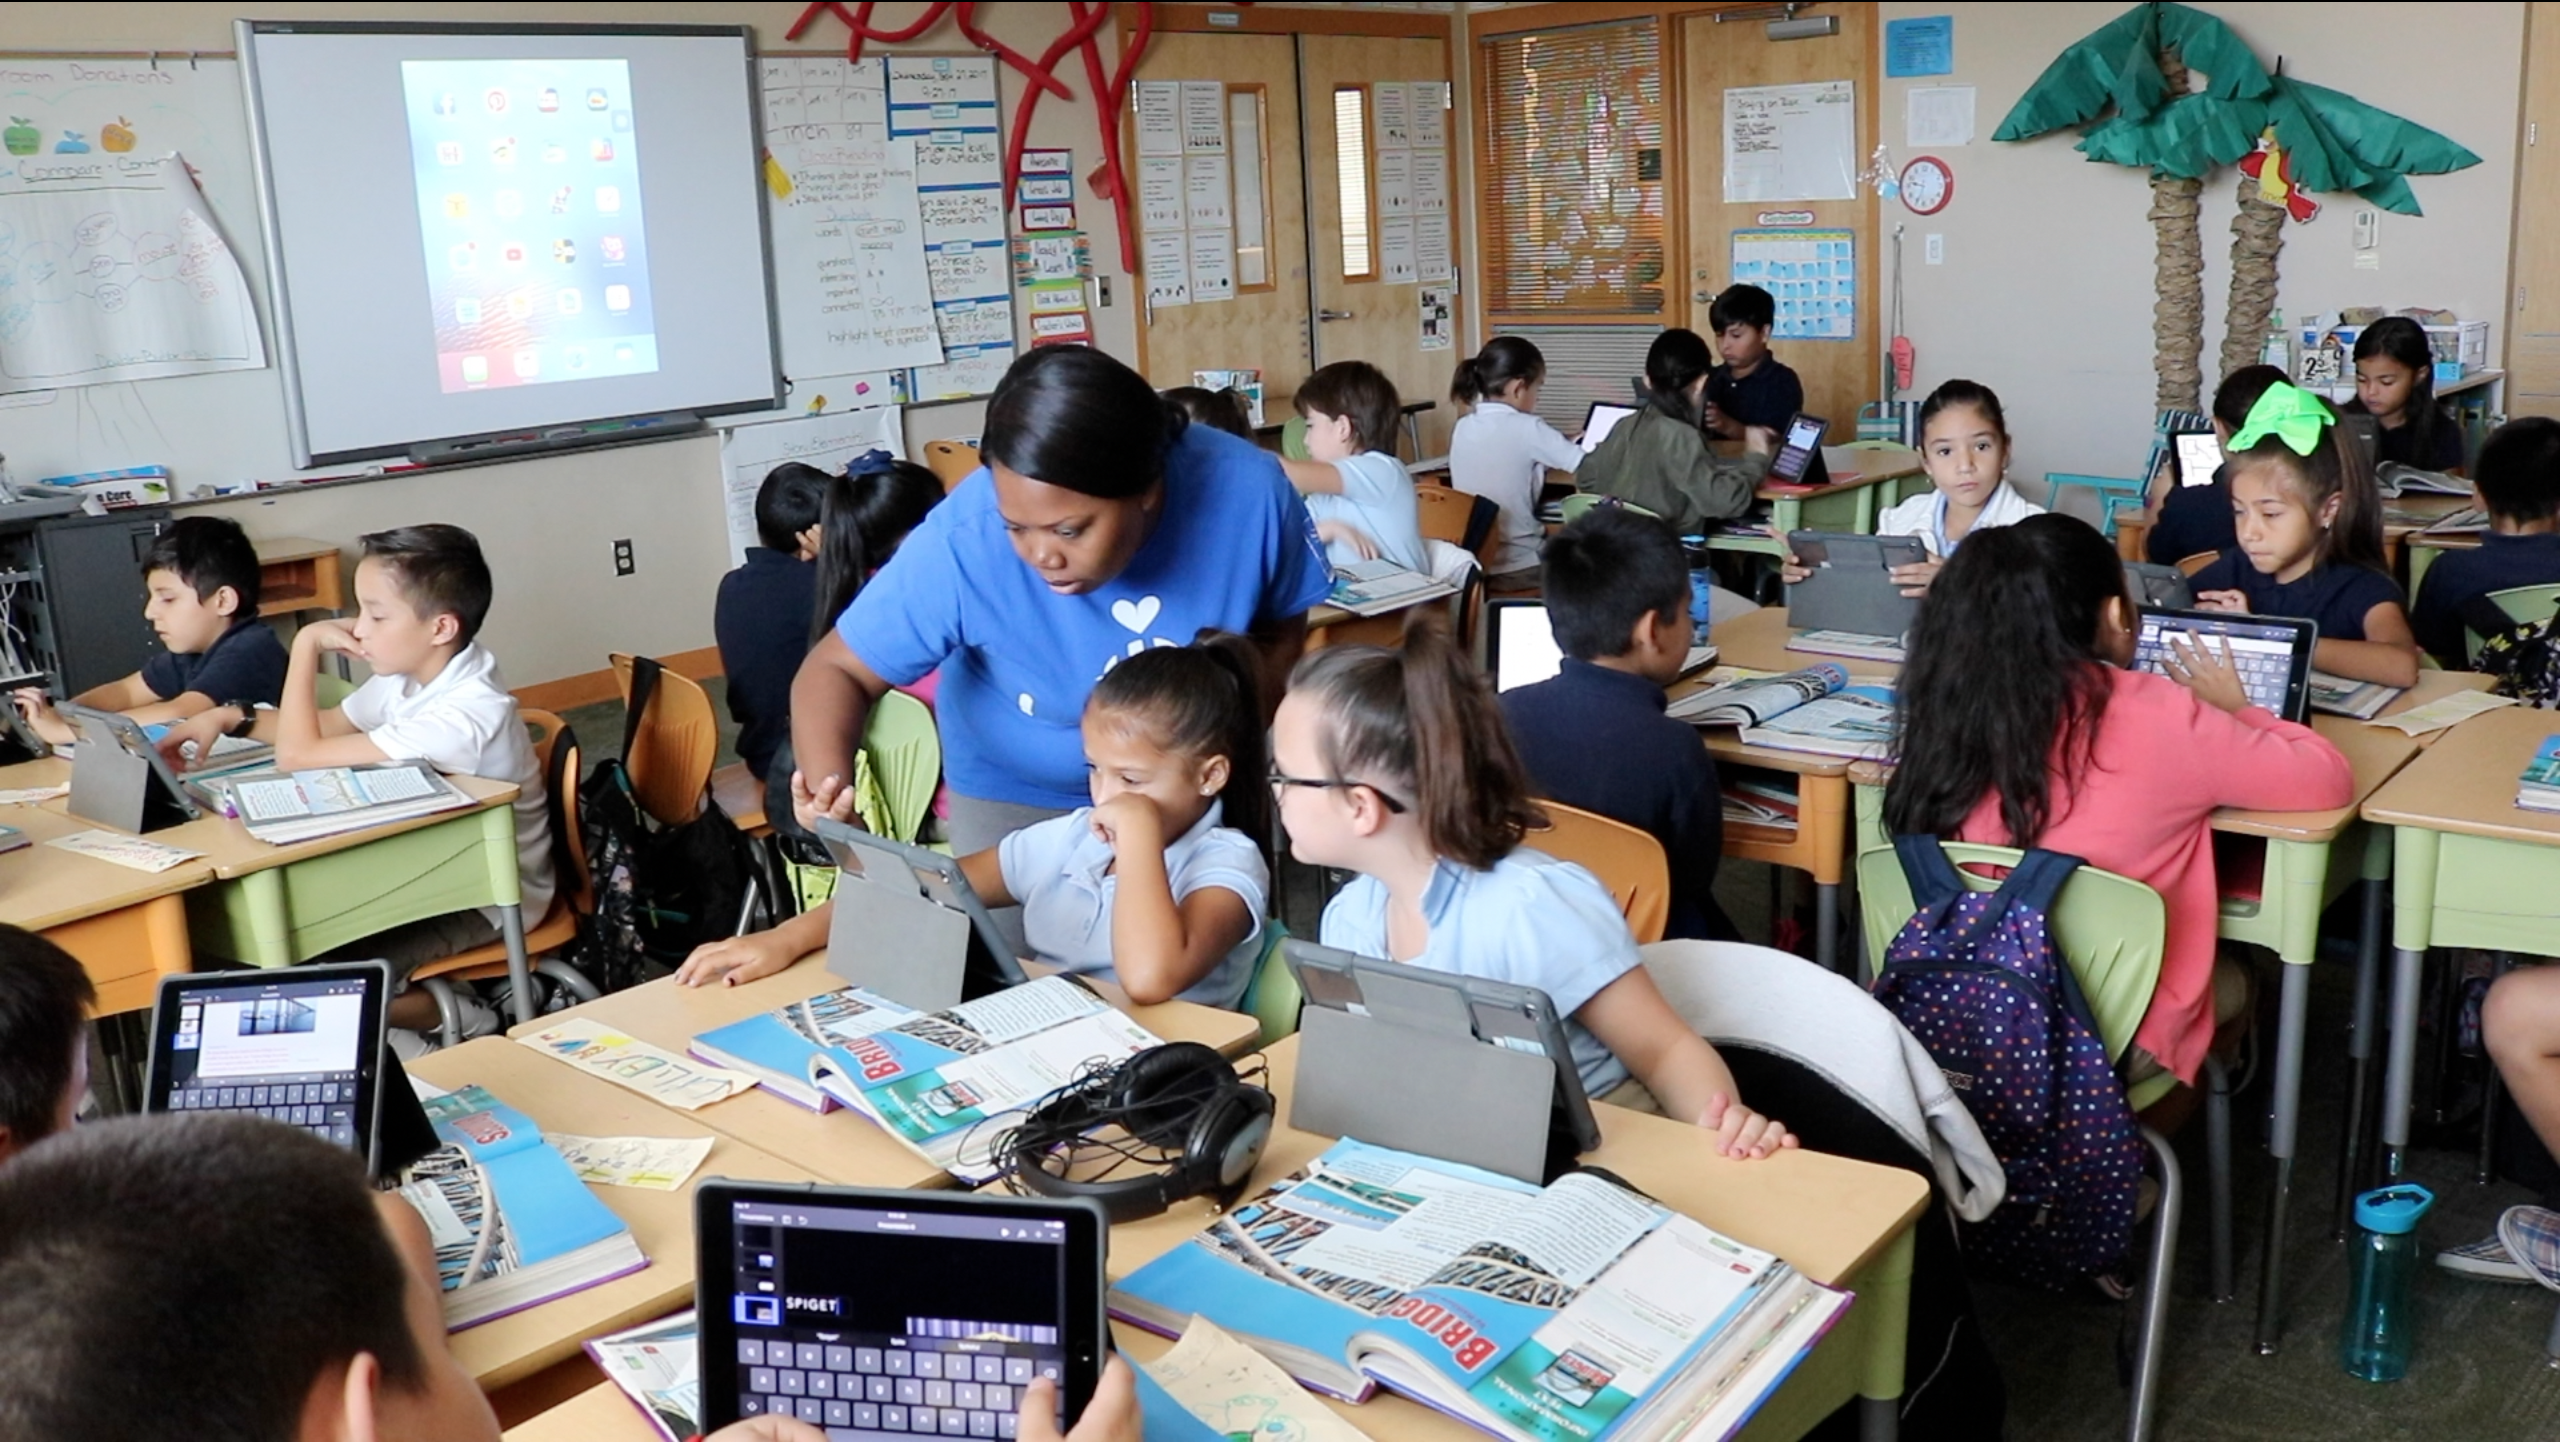 Elementary Classrooms Technology Use ~ Technology in the classroom increases creativity and